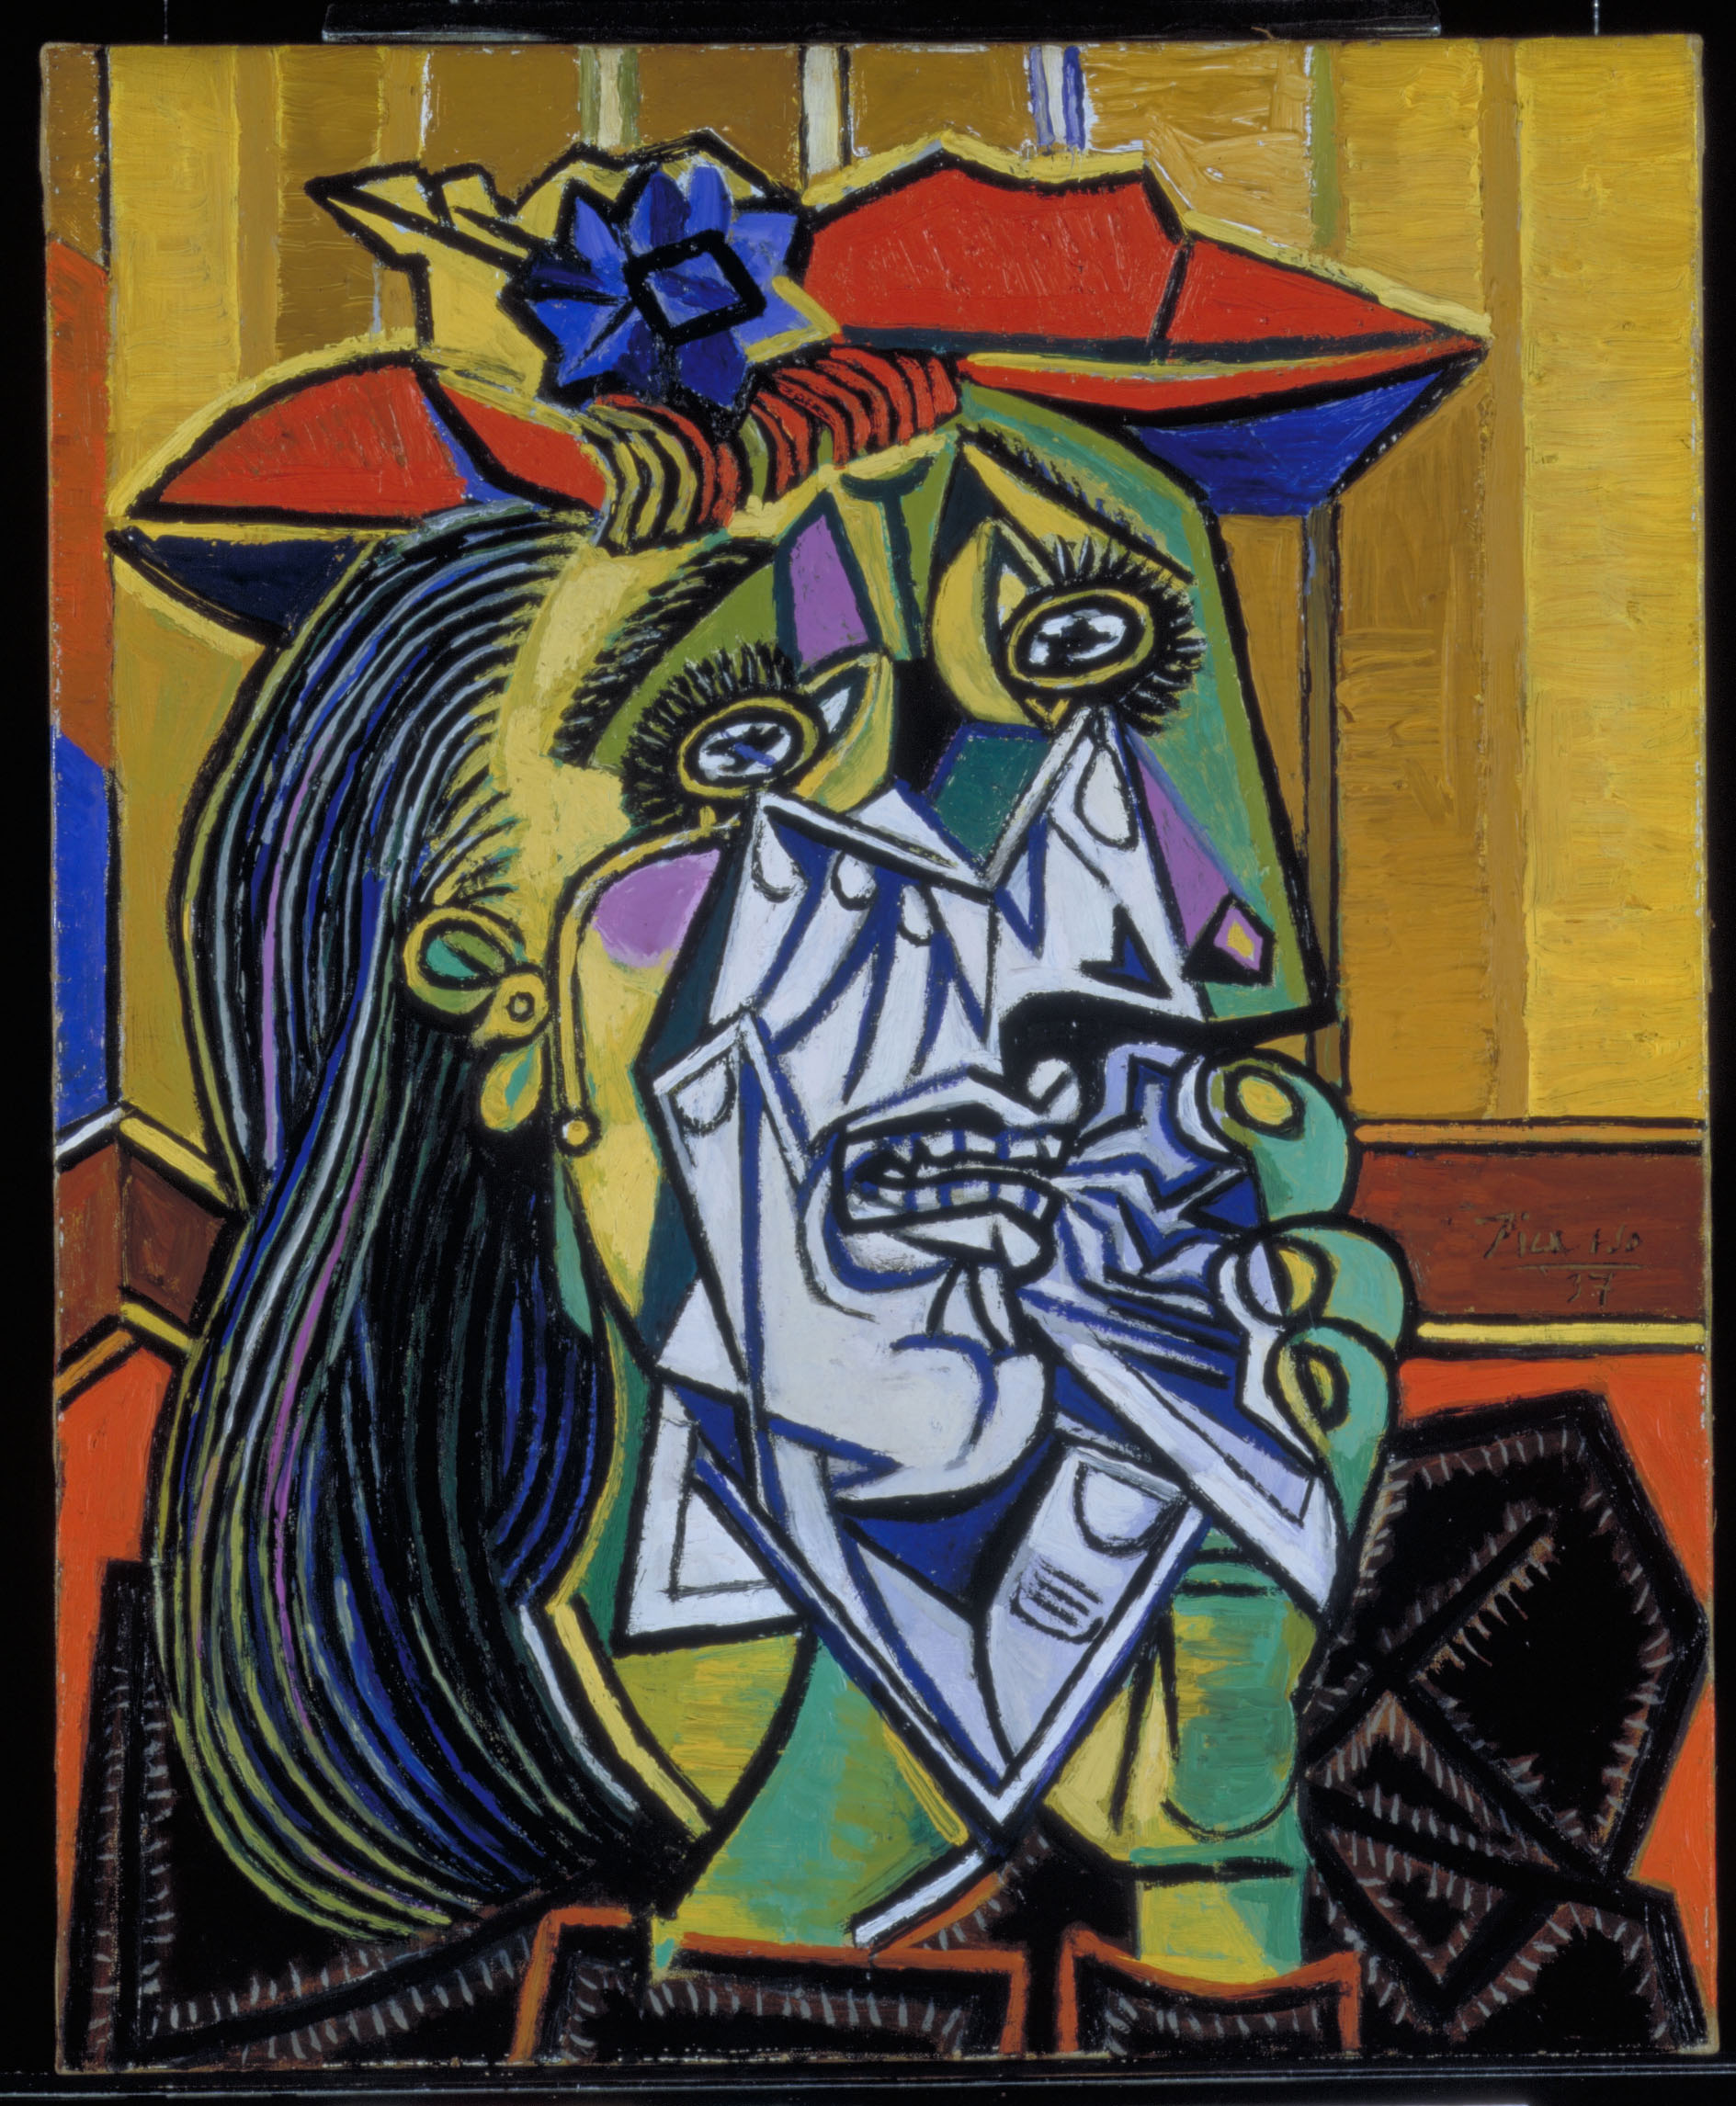 Pablo Picasso, Weeping Woman, 1937, Art Funded 1988 - © Succession Picasso, DACS 2016